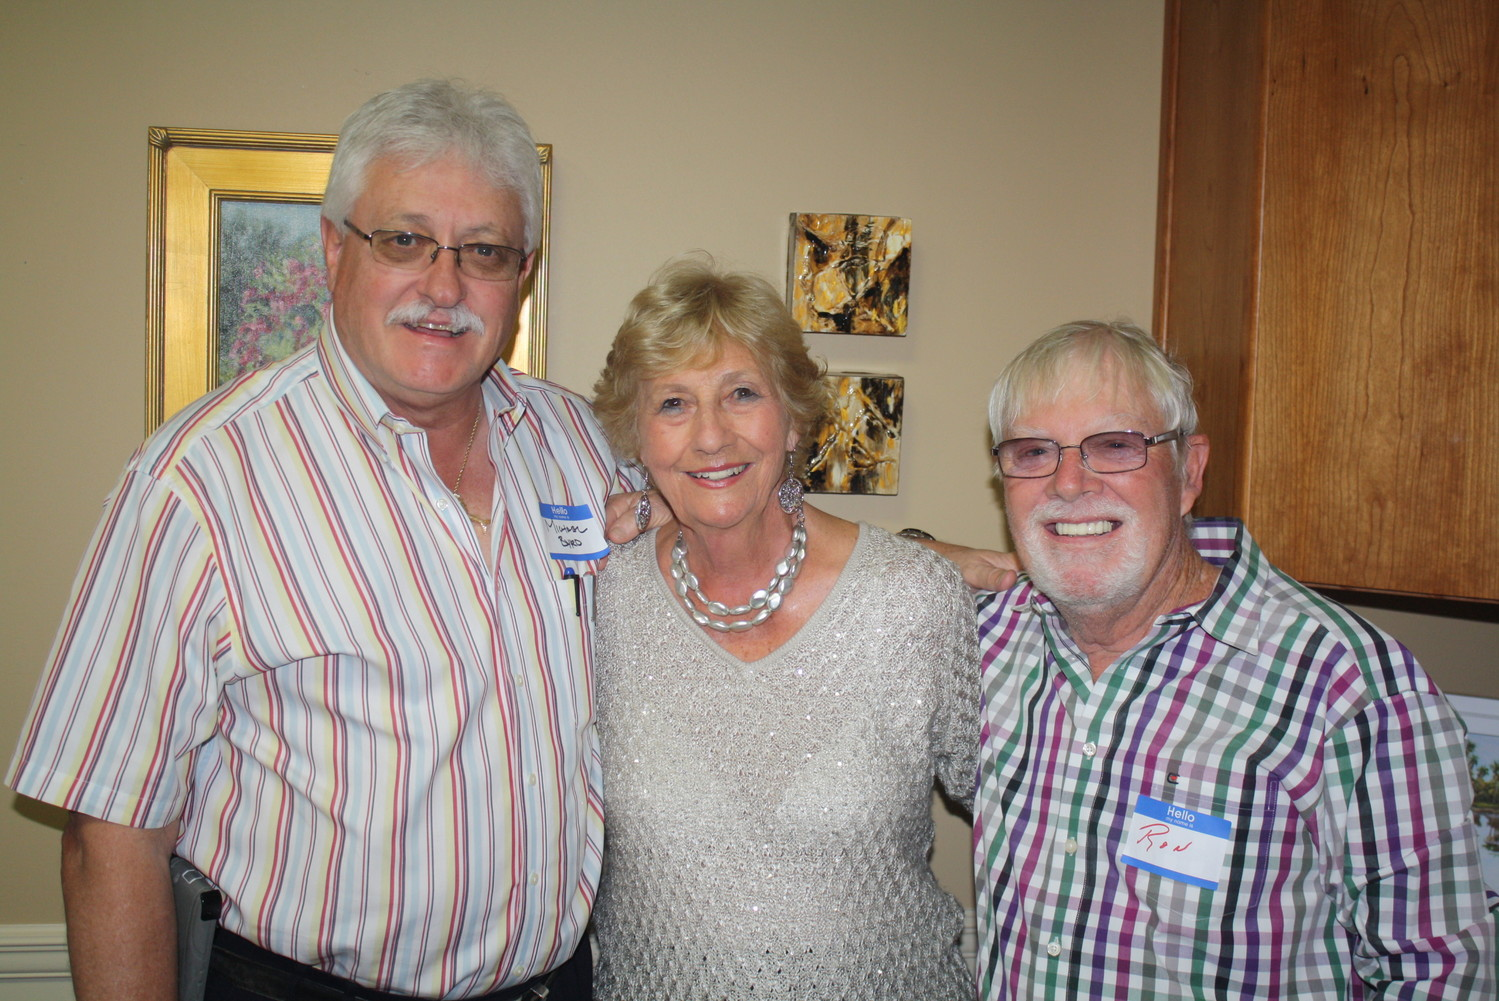 Michael Byrd, Marge Monteith and Ron Collins